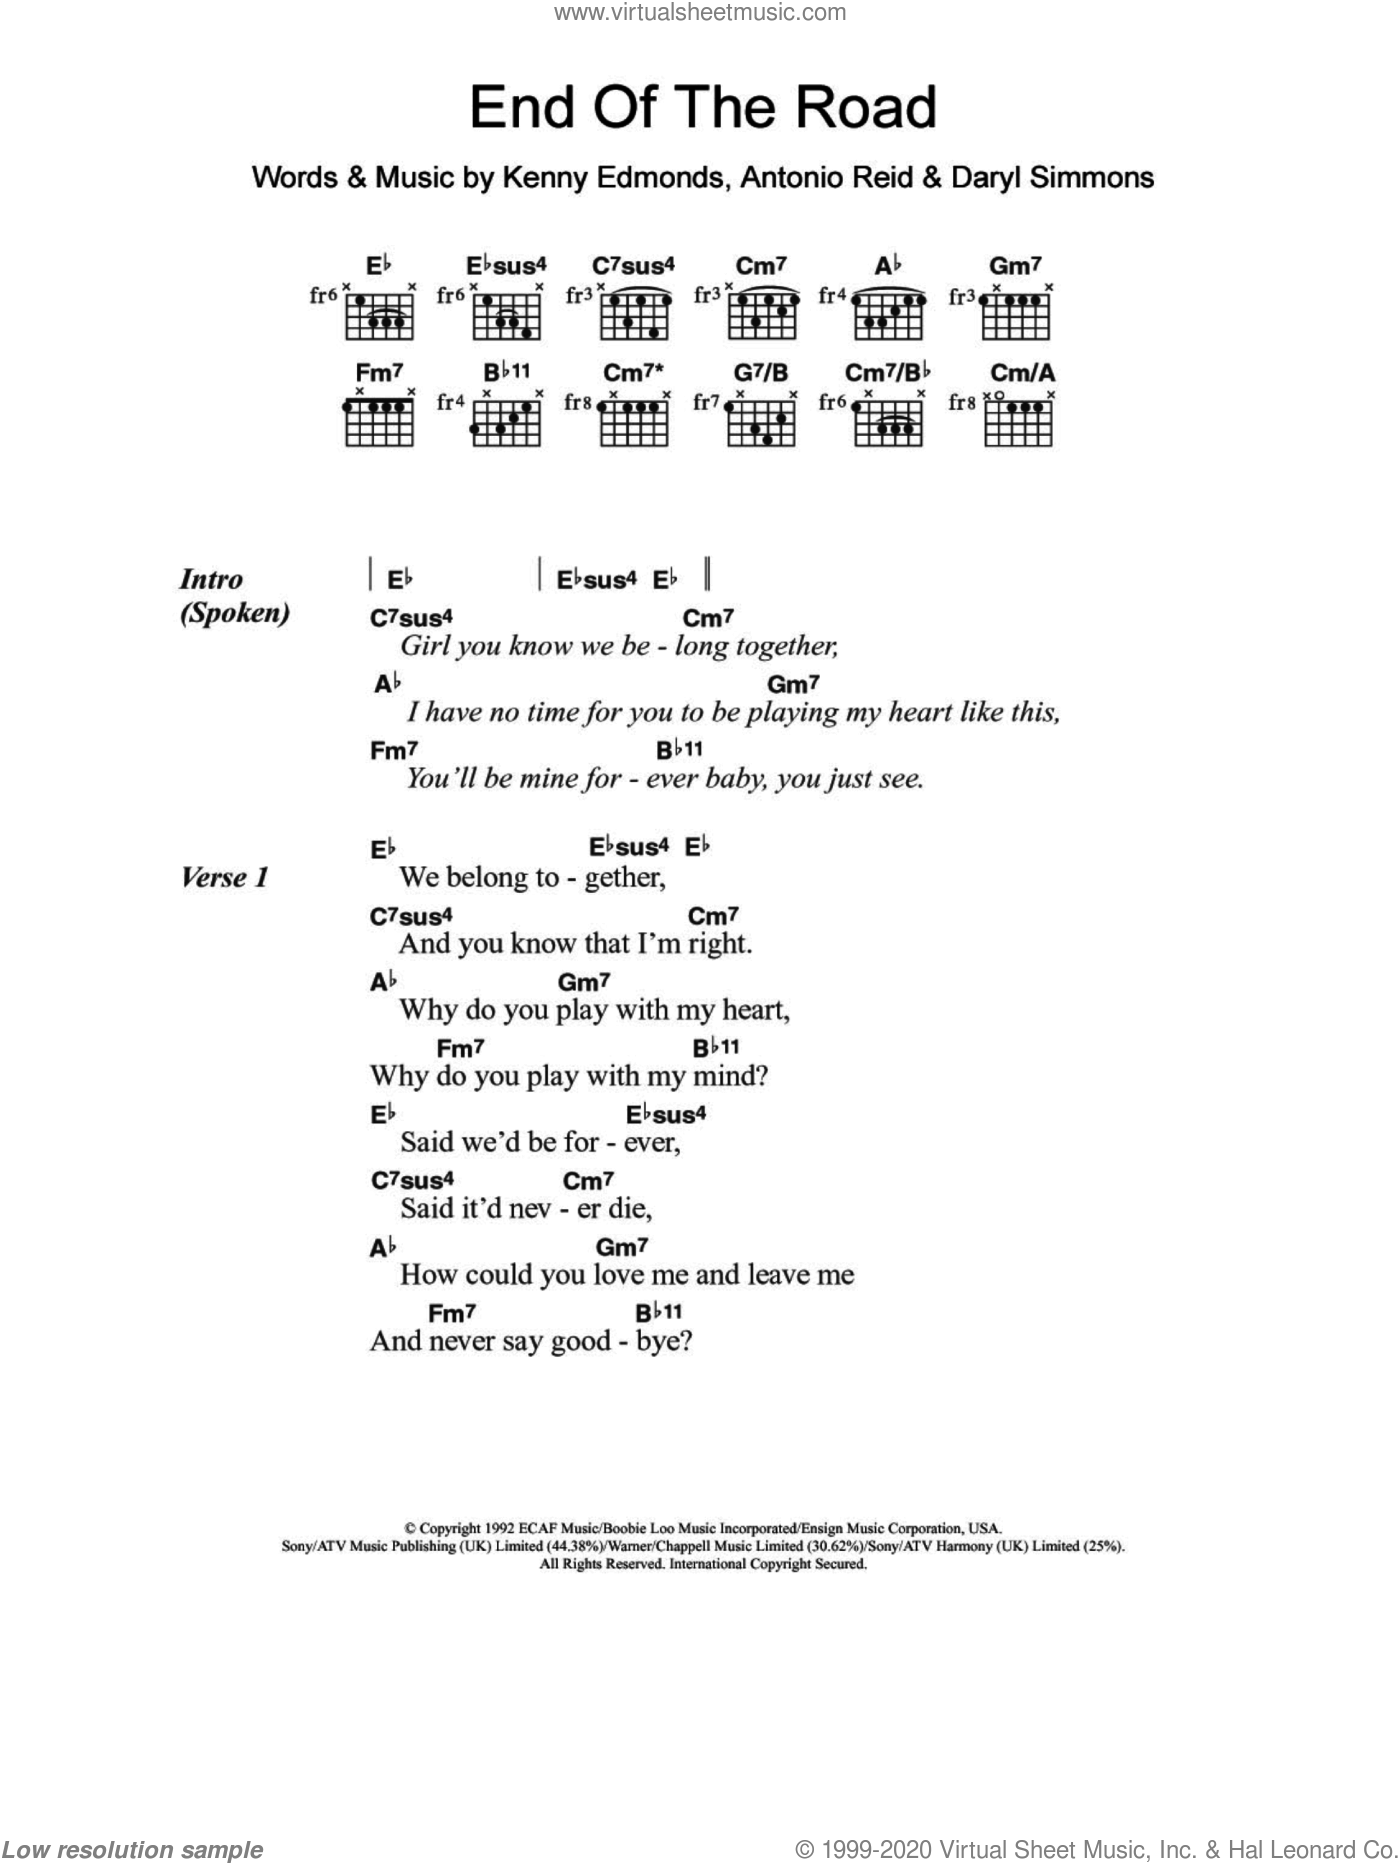 End Of The Road sheet music for guitar (chords) by Kenneth Edmonds, Boyz II Men, Antonio Reid and Daryl Simmons. Score Image Preview.